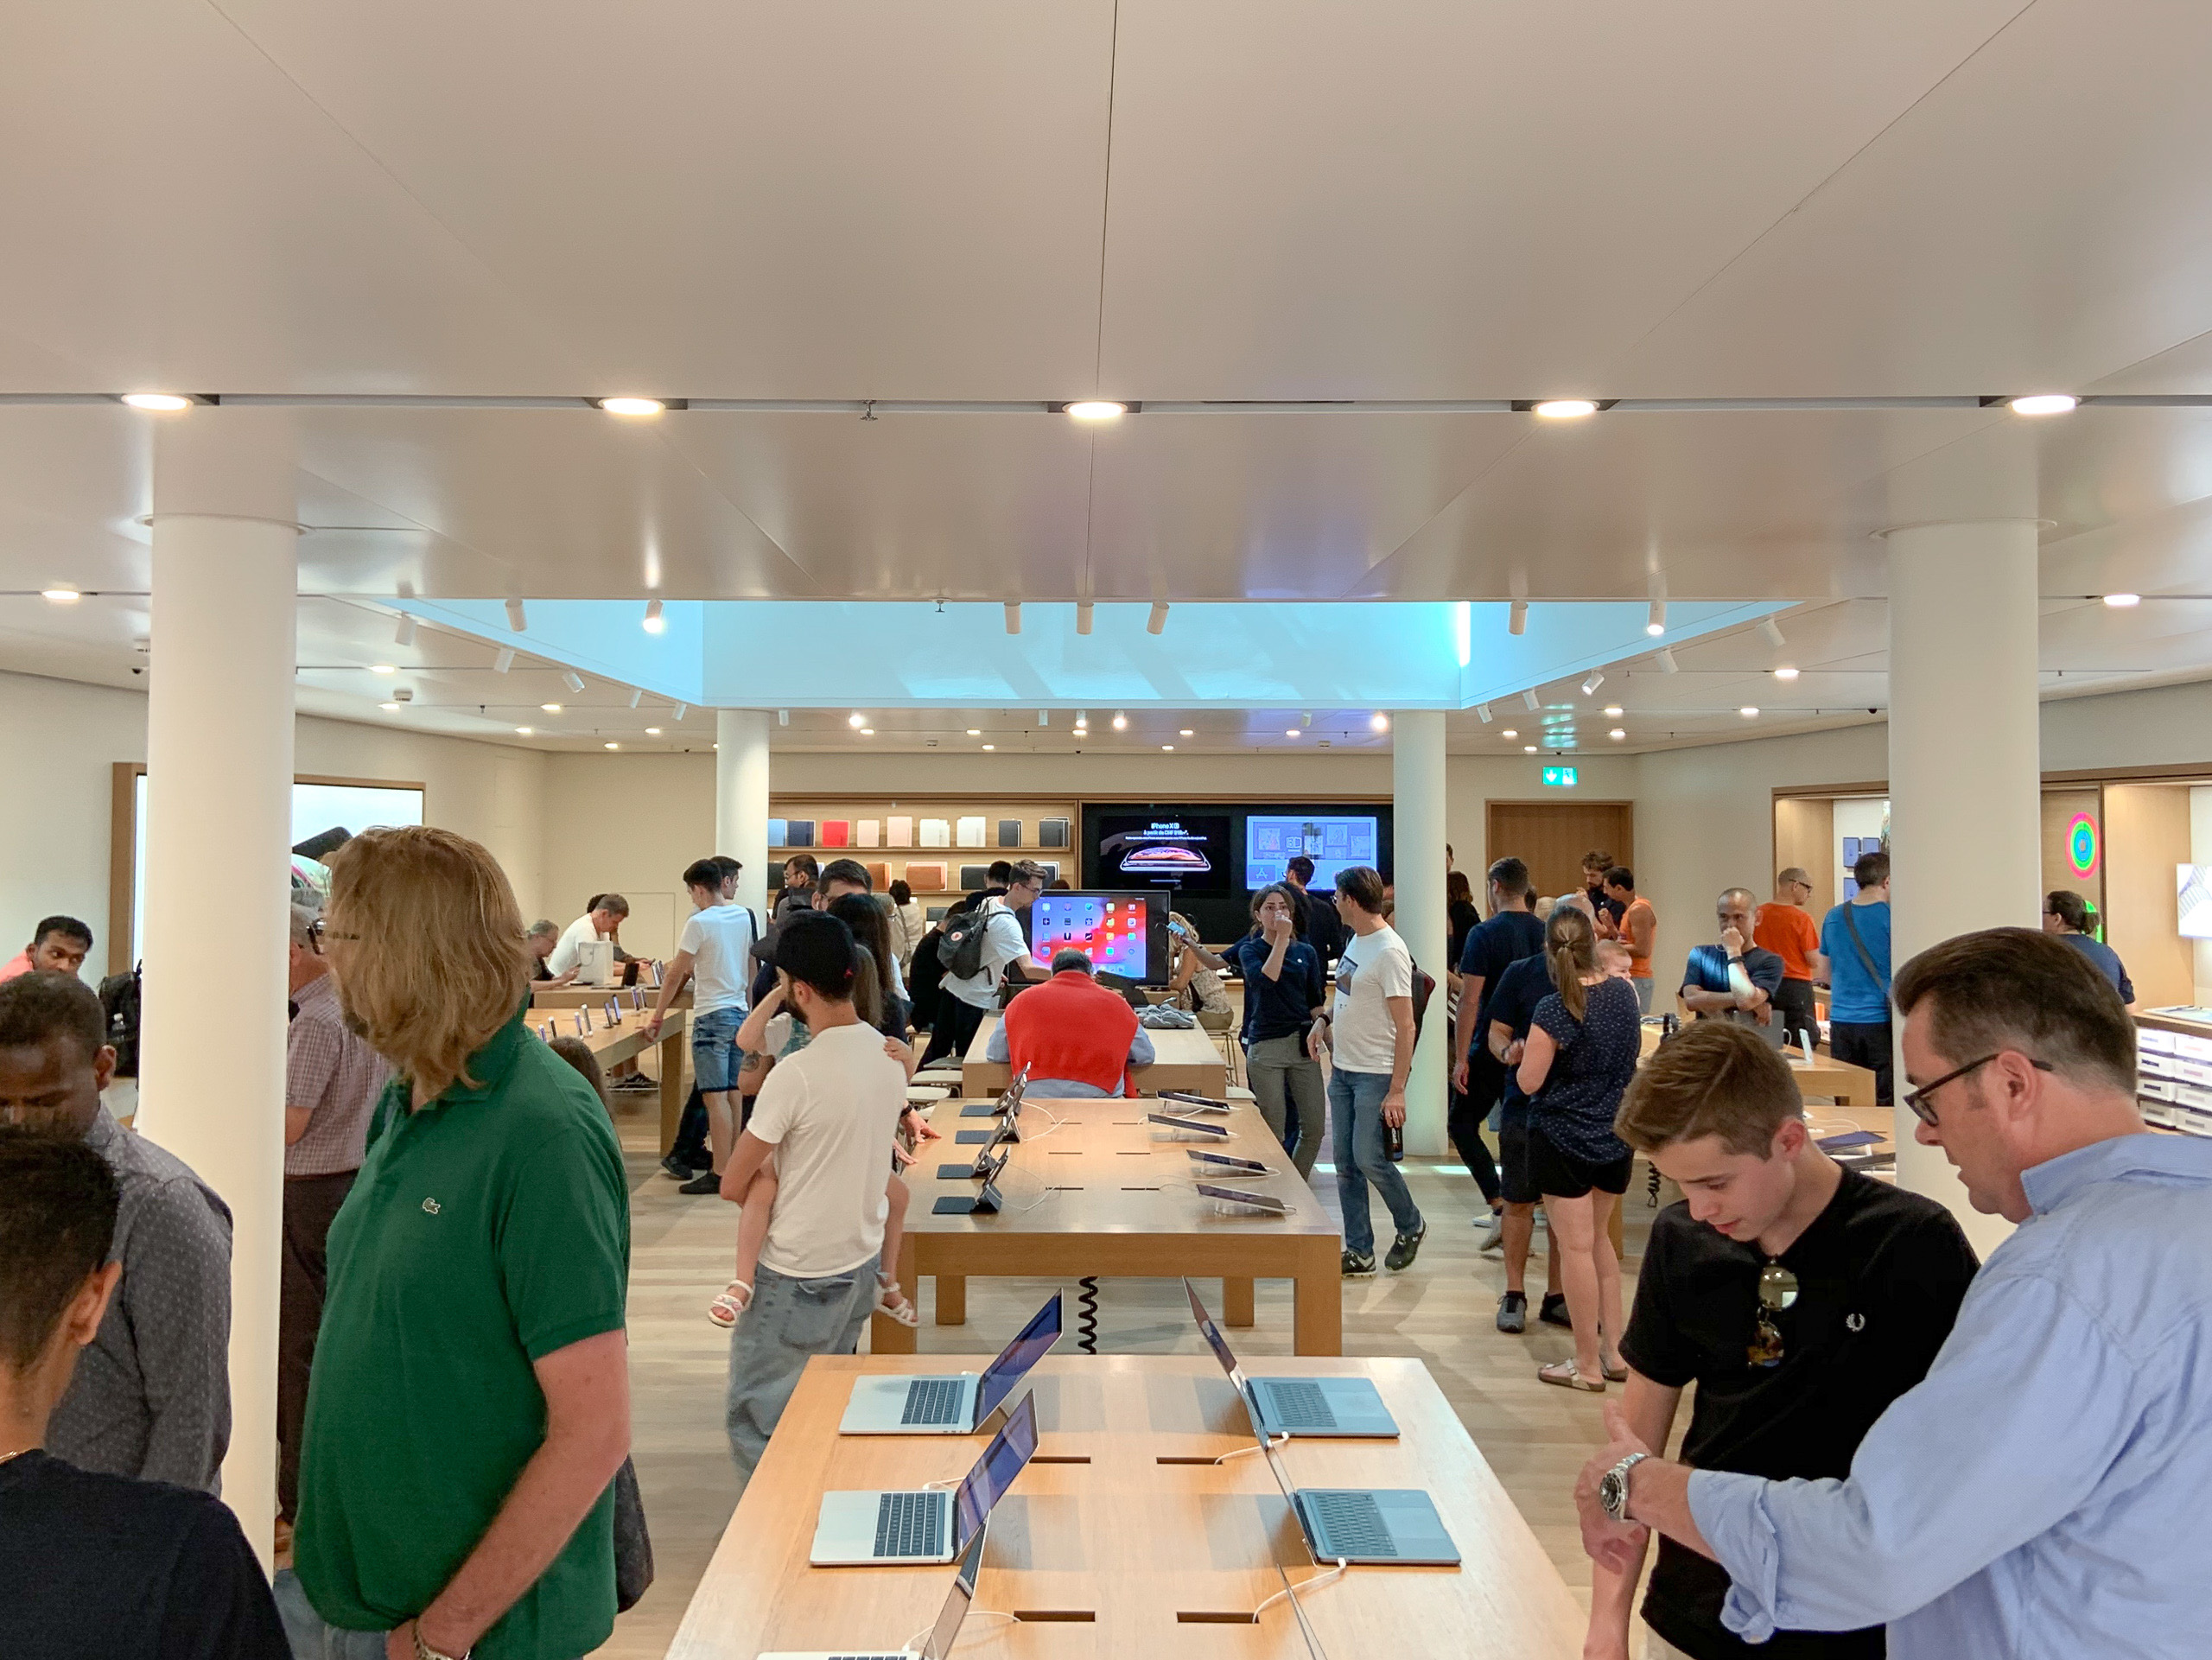 Apple Rennweg Upper Floor